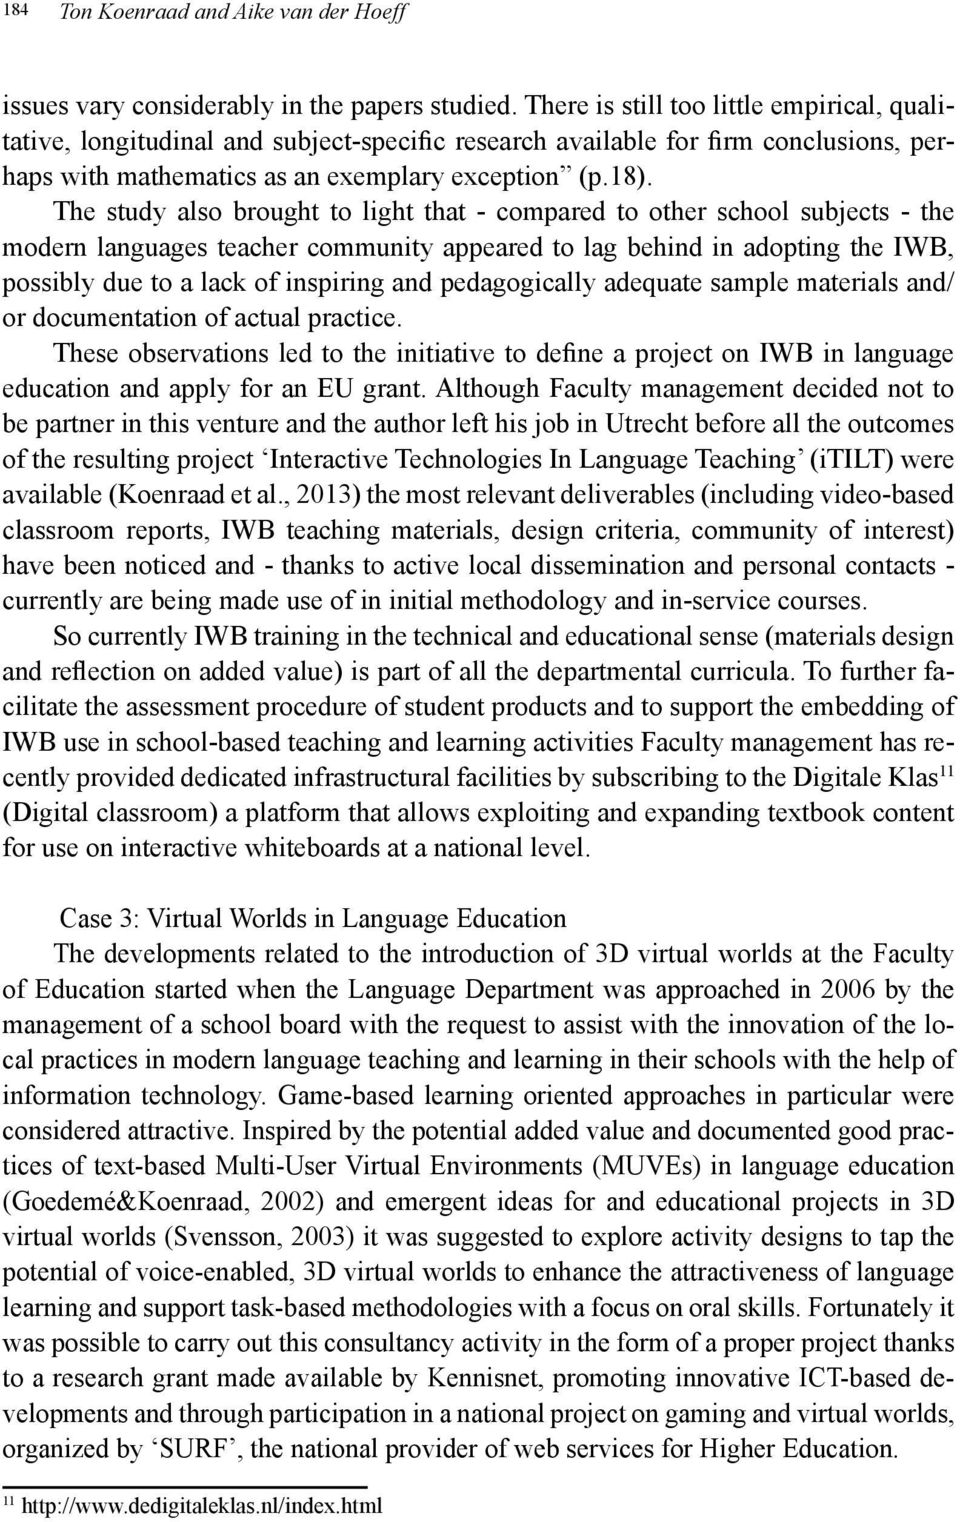 The study also brought to light that - compared to other school subjects - the modern languages teacher community appeared to lag behind in adopting the IWB, possibly due to a lack of inspiring and